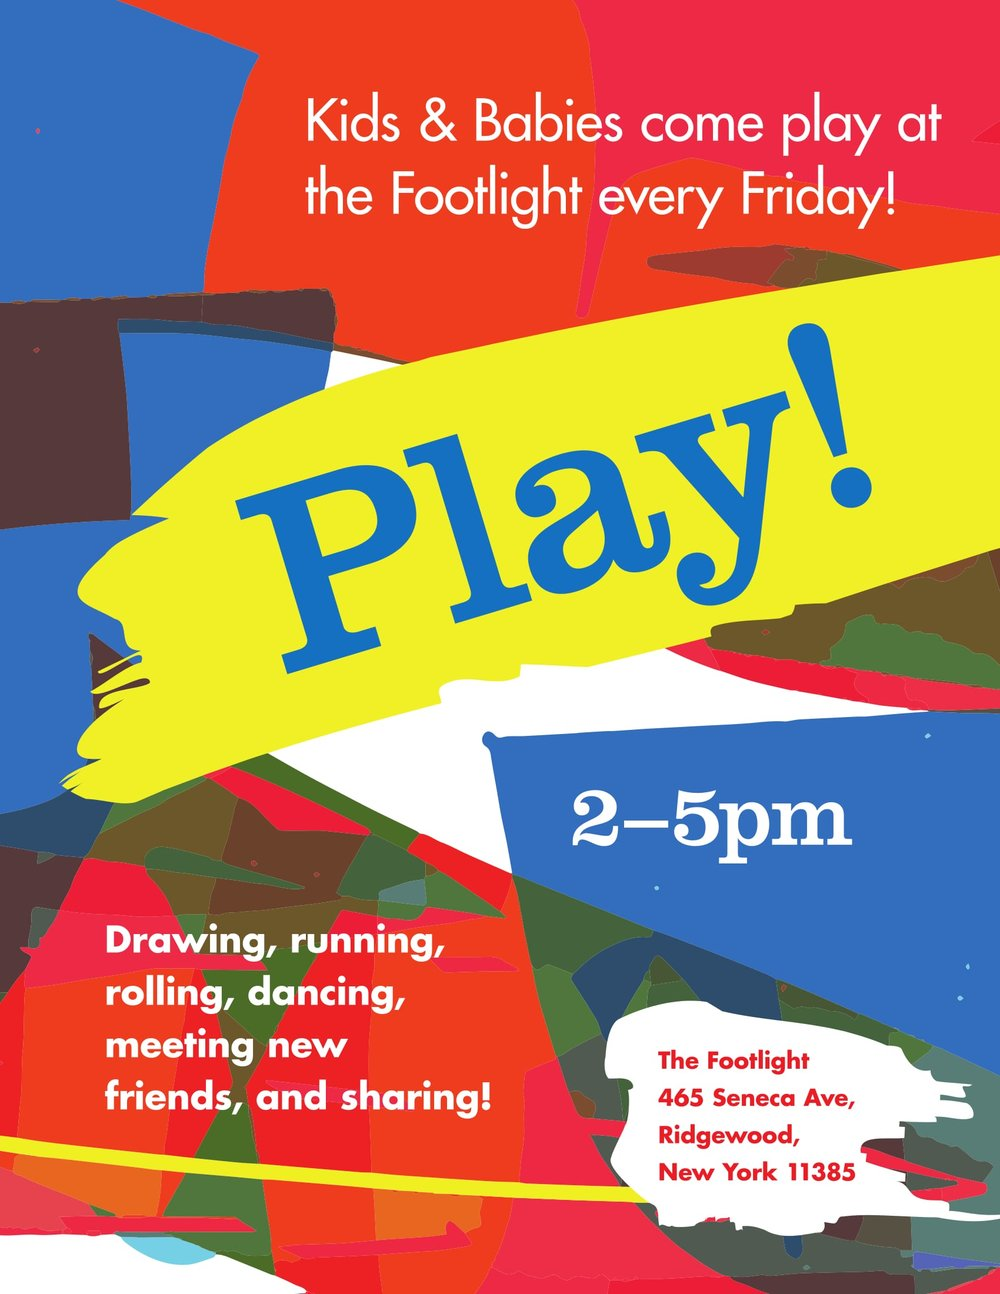 footlight play friday flyer_print no crop-1.jpg